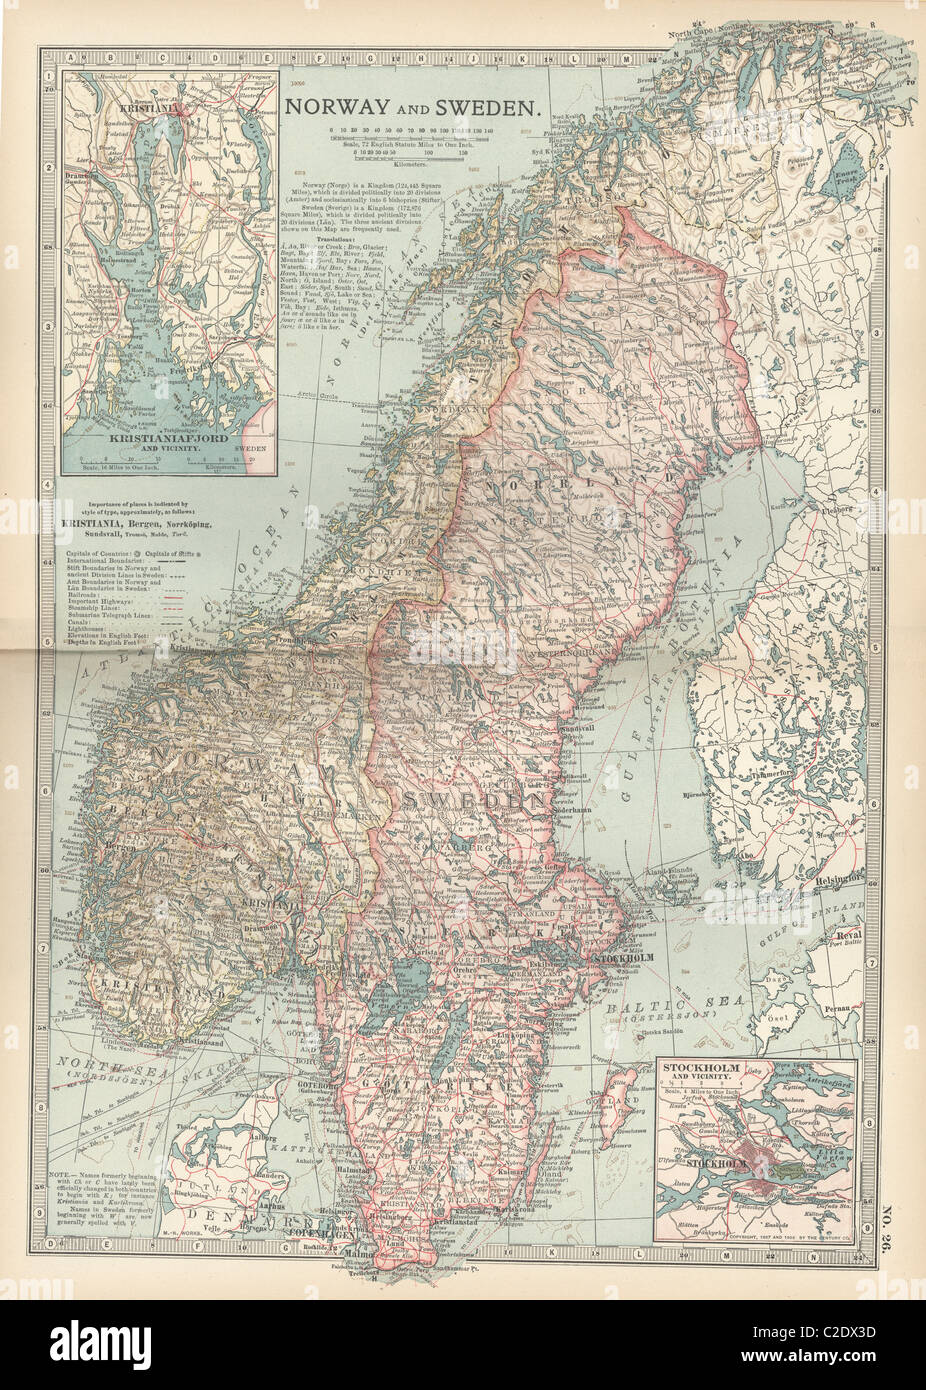 Map of Norway and Sweden - Stock Image